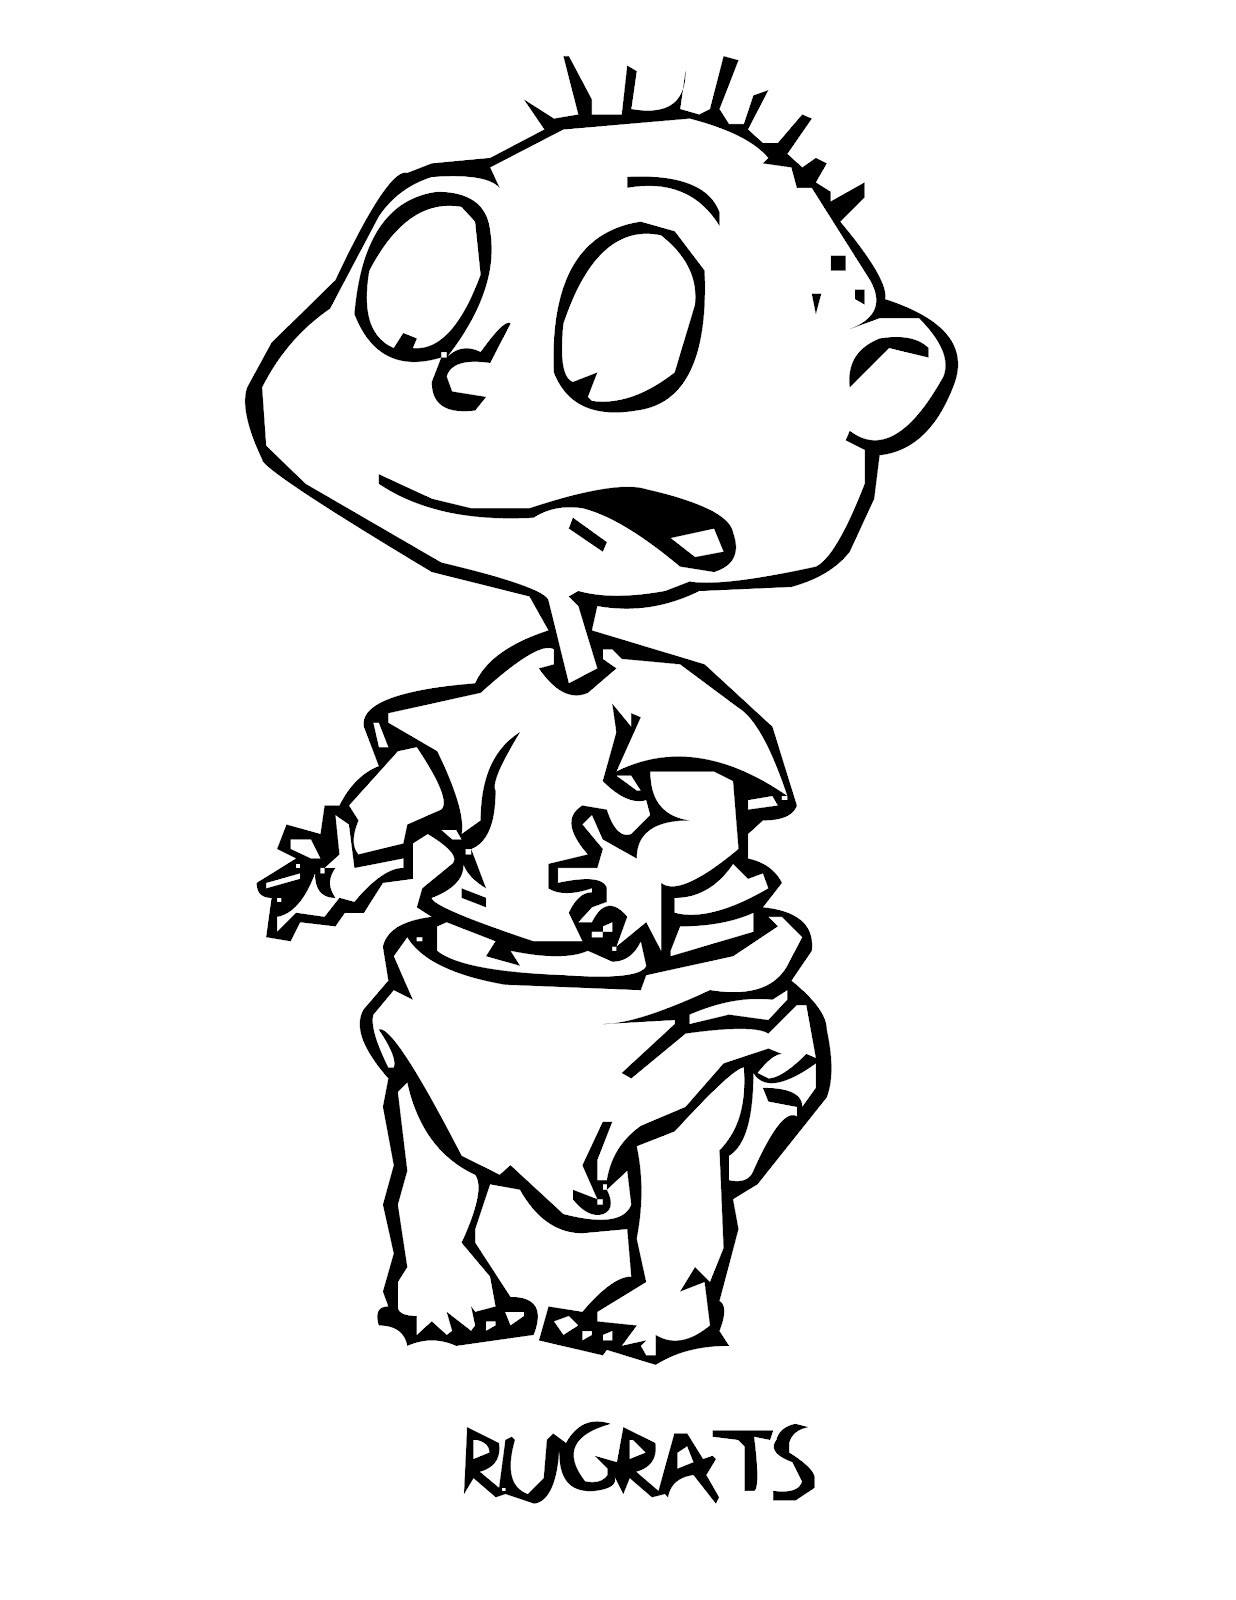 angelica rugrats coloring pages rugrats angelica coloring pages at getdrawings free download rugrats pages coloring angelica